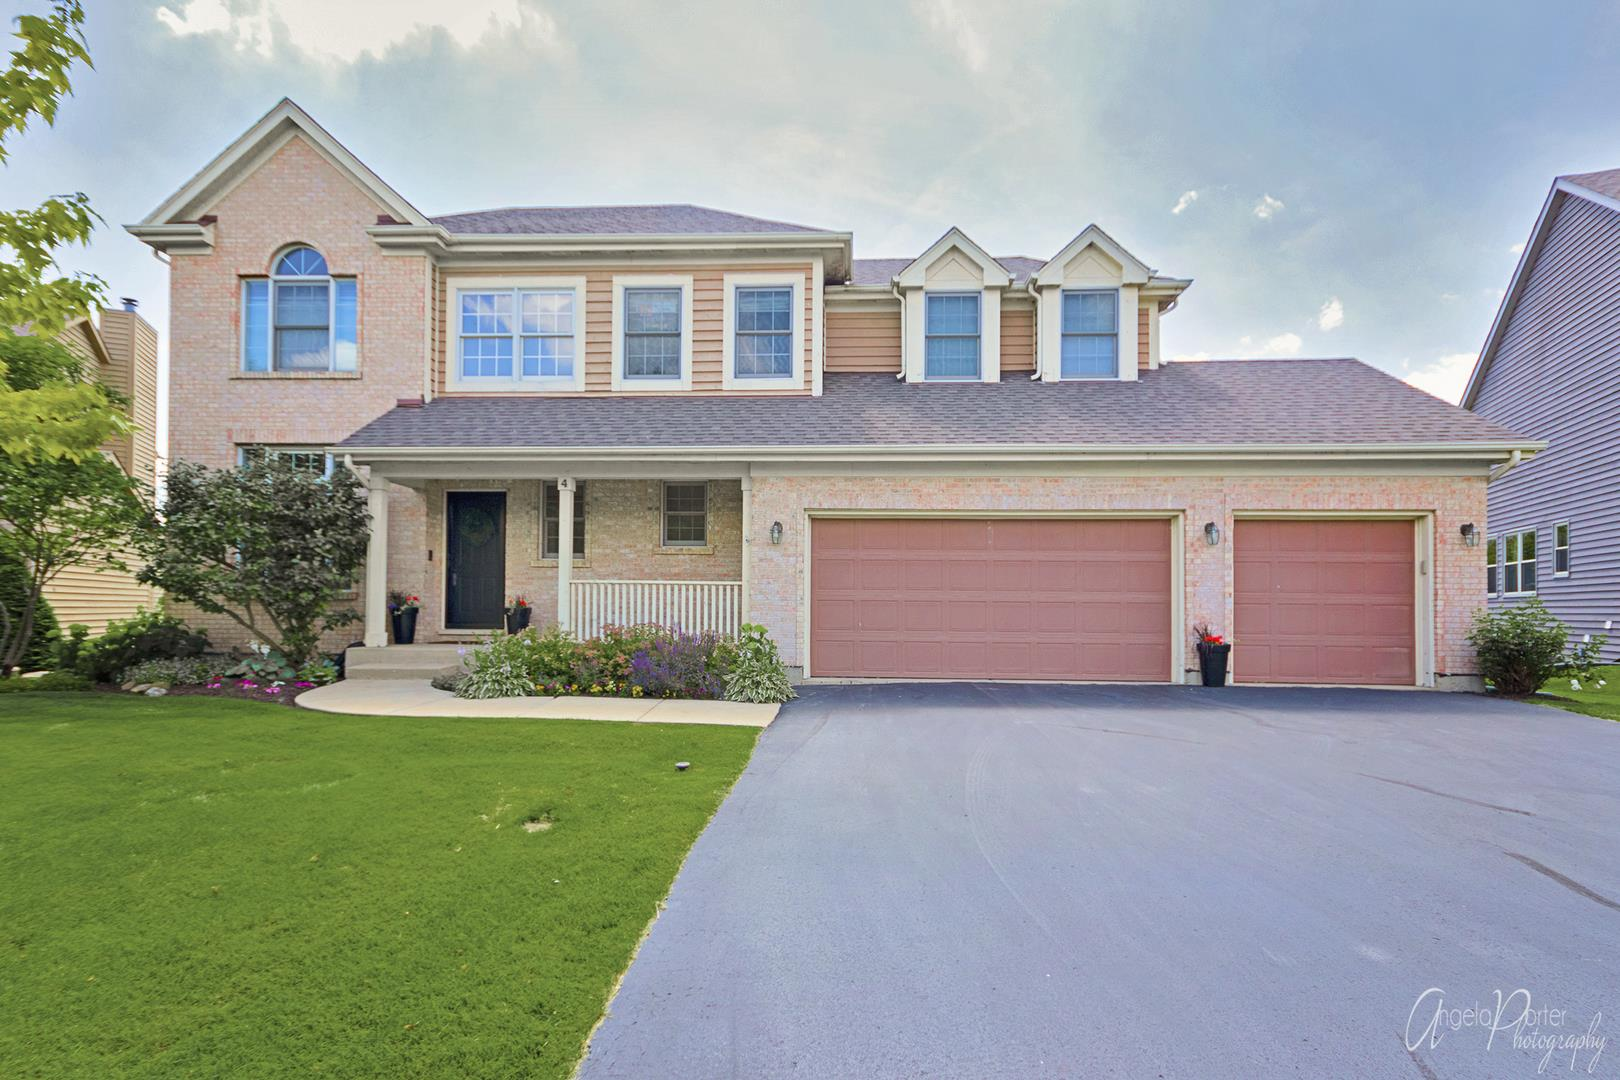 4 12 LAKES Court, Lake in the Hills, IL 60156 - #: 10795105